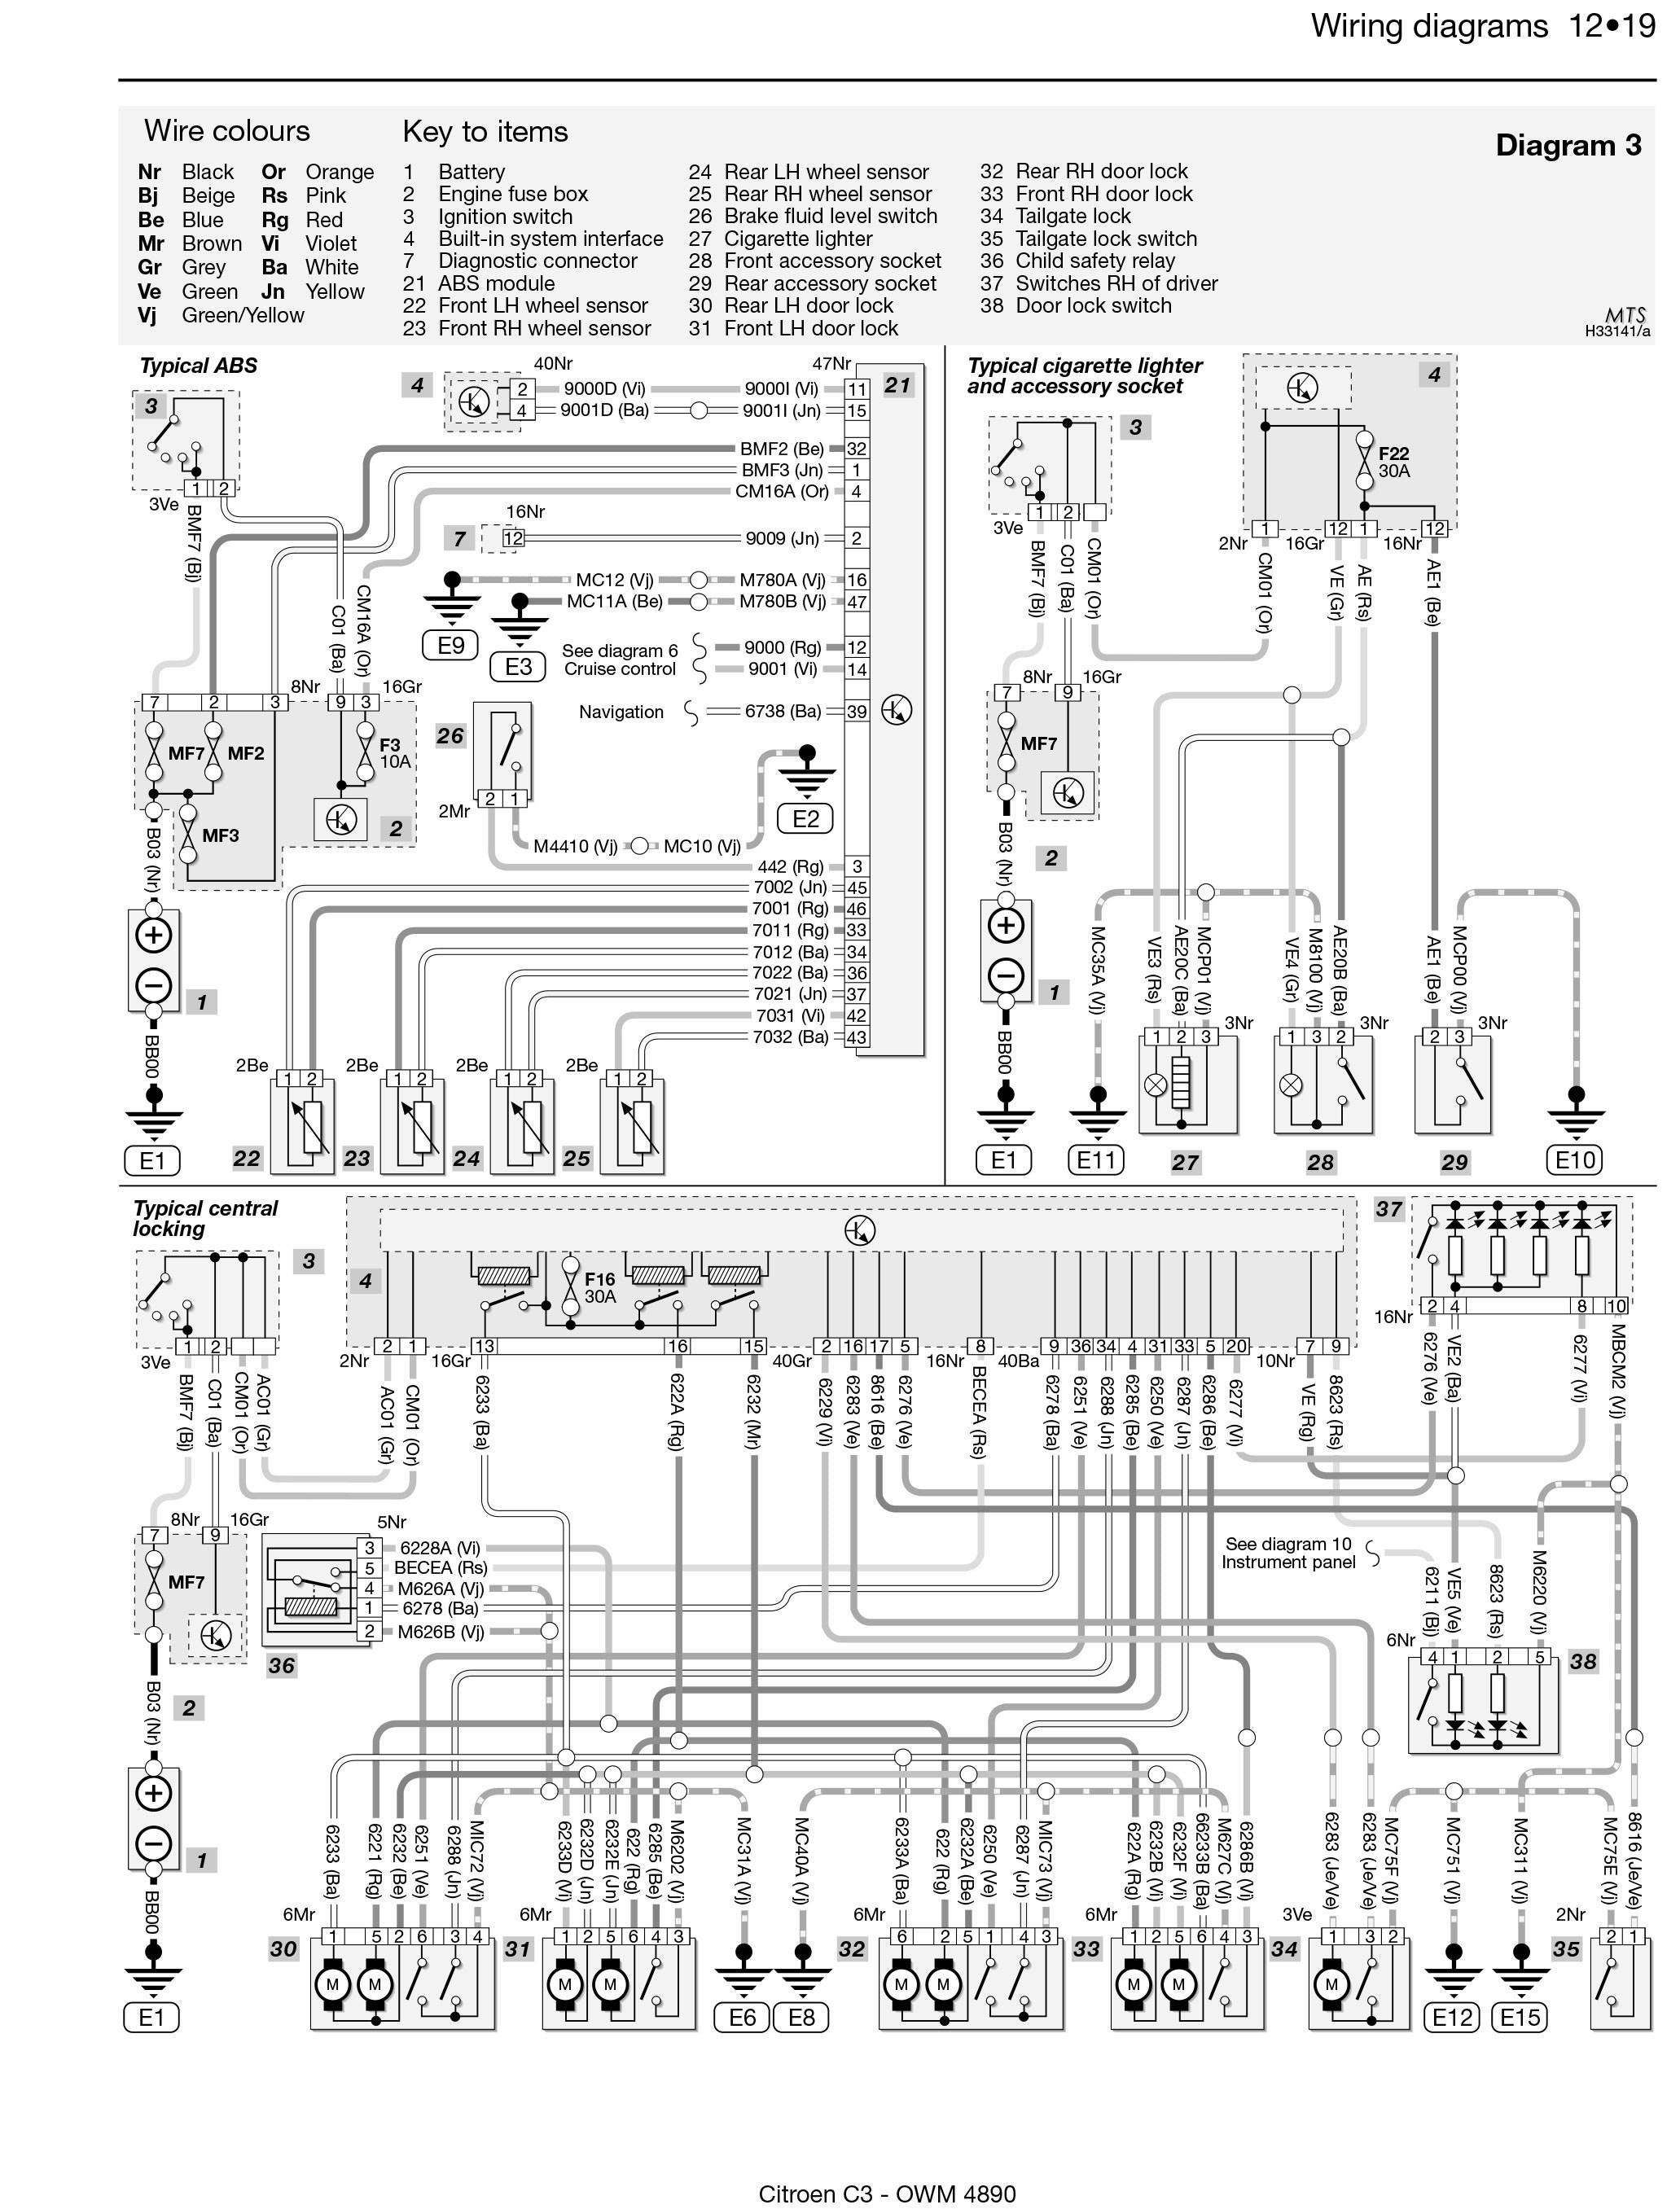 Citroen Picasso Engine    Diagram      My    Wiring       DIagram